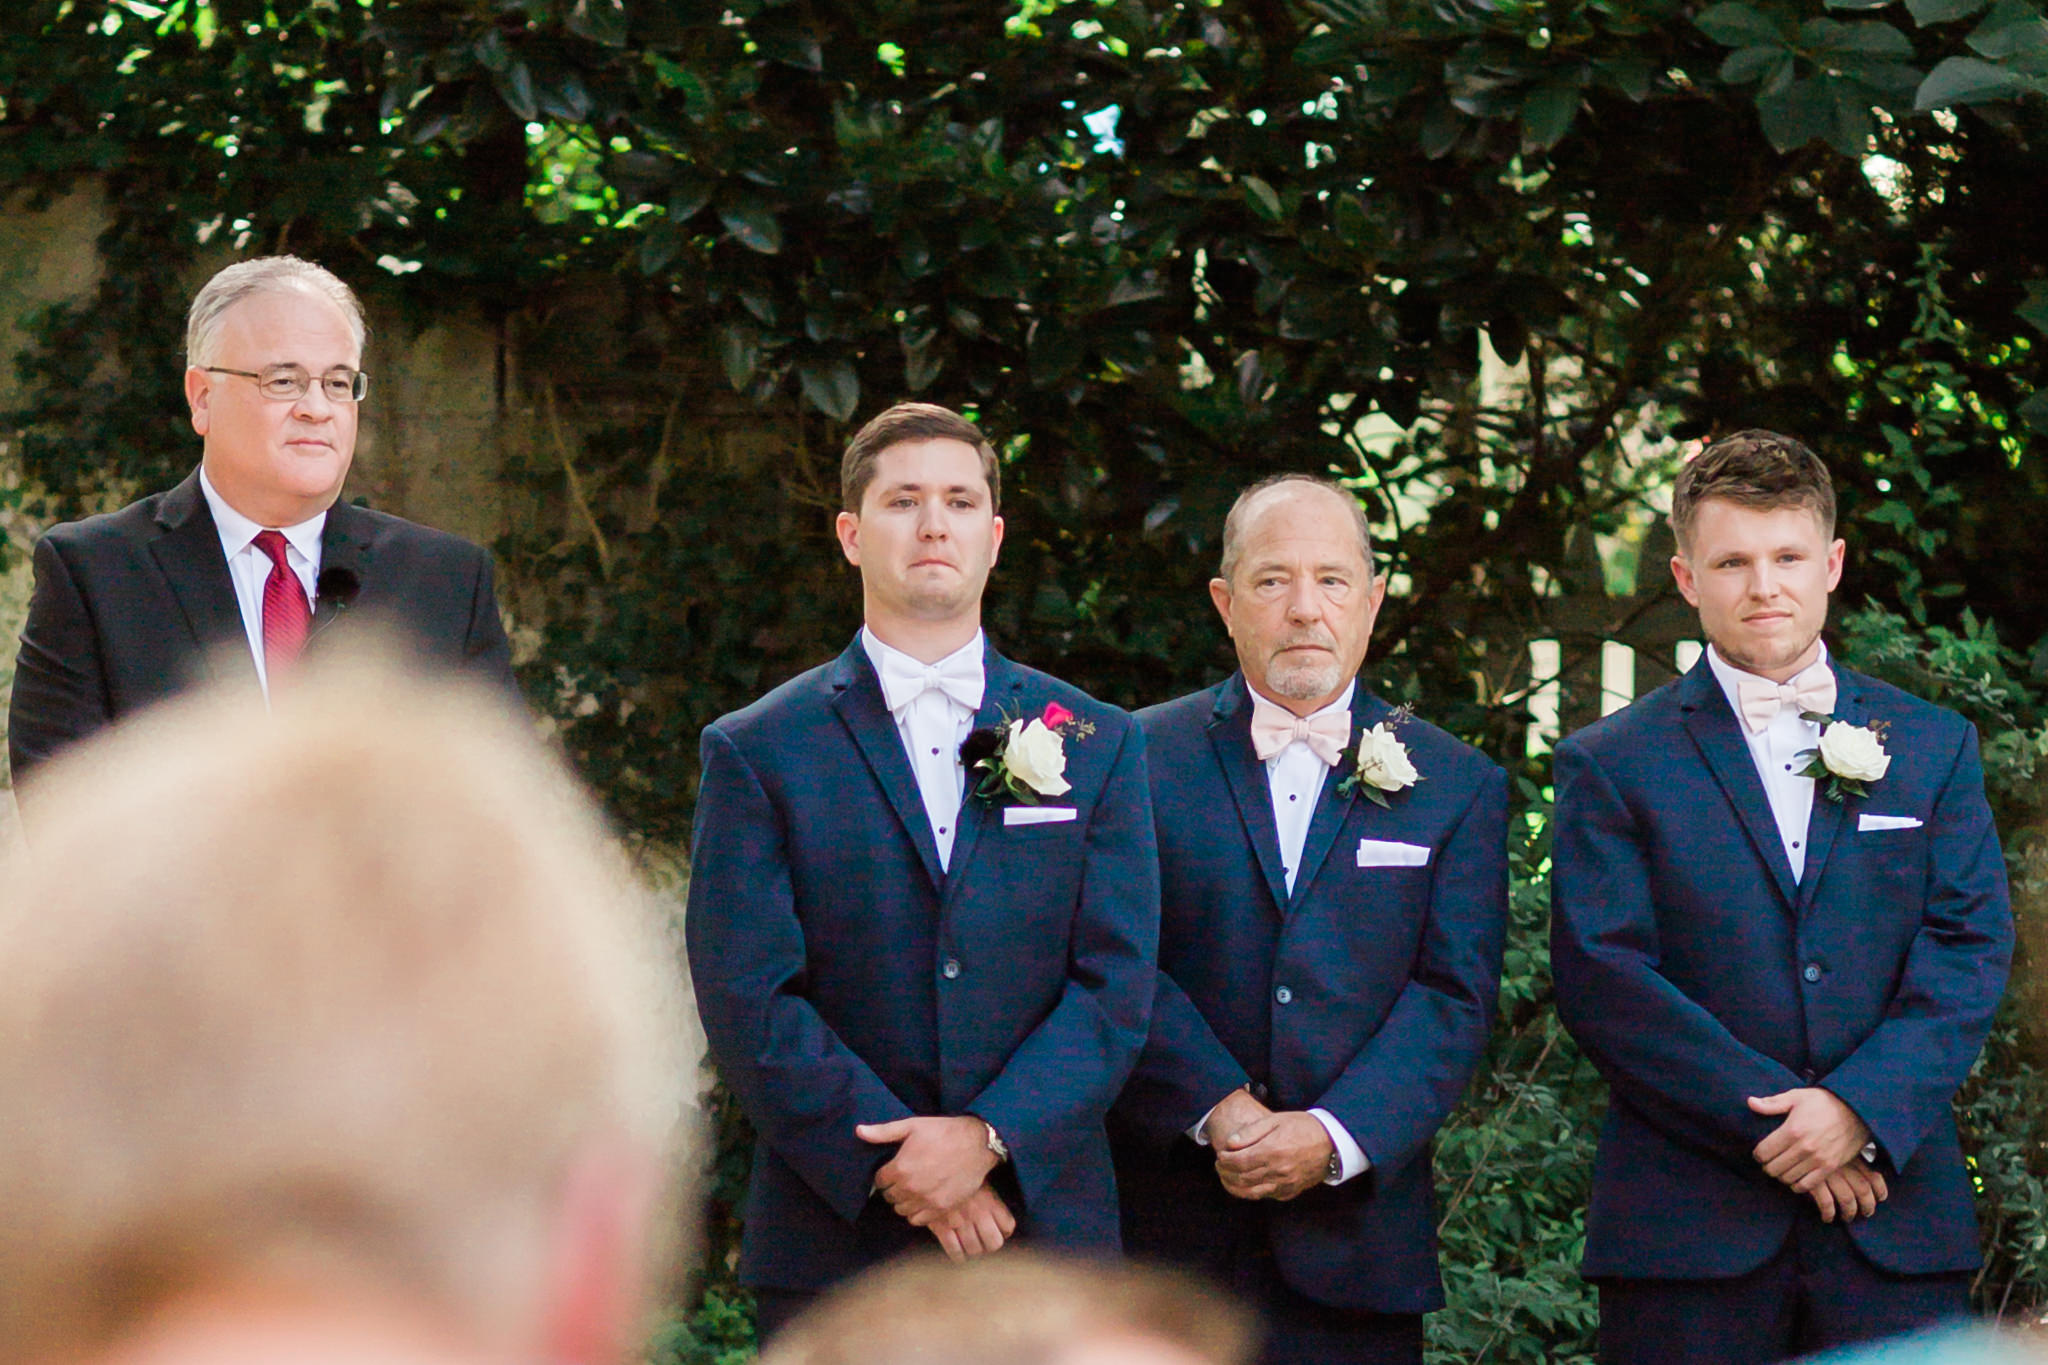 Jeff focusing in on the groom during his first time seeing his bride that day